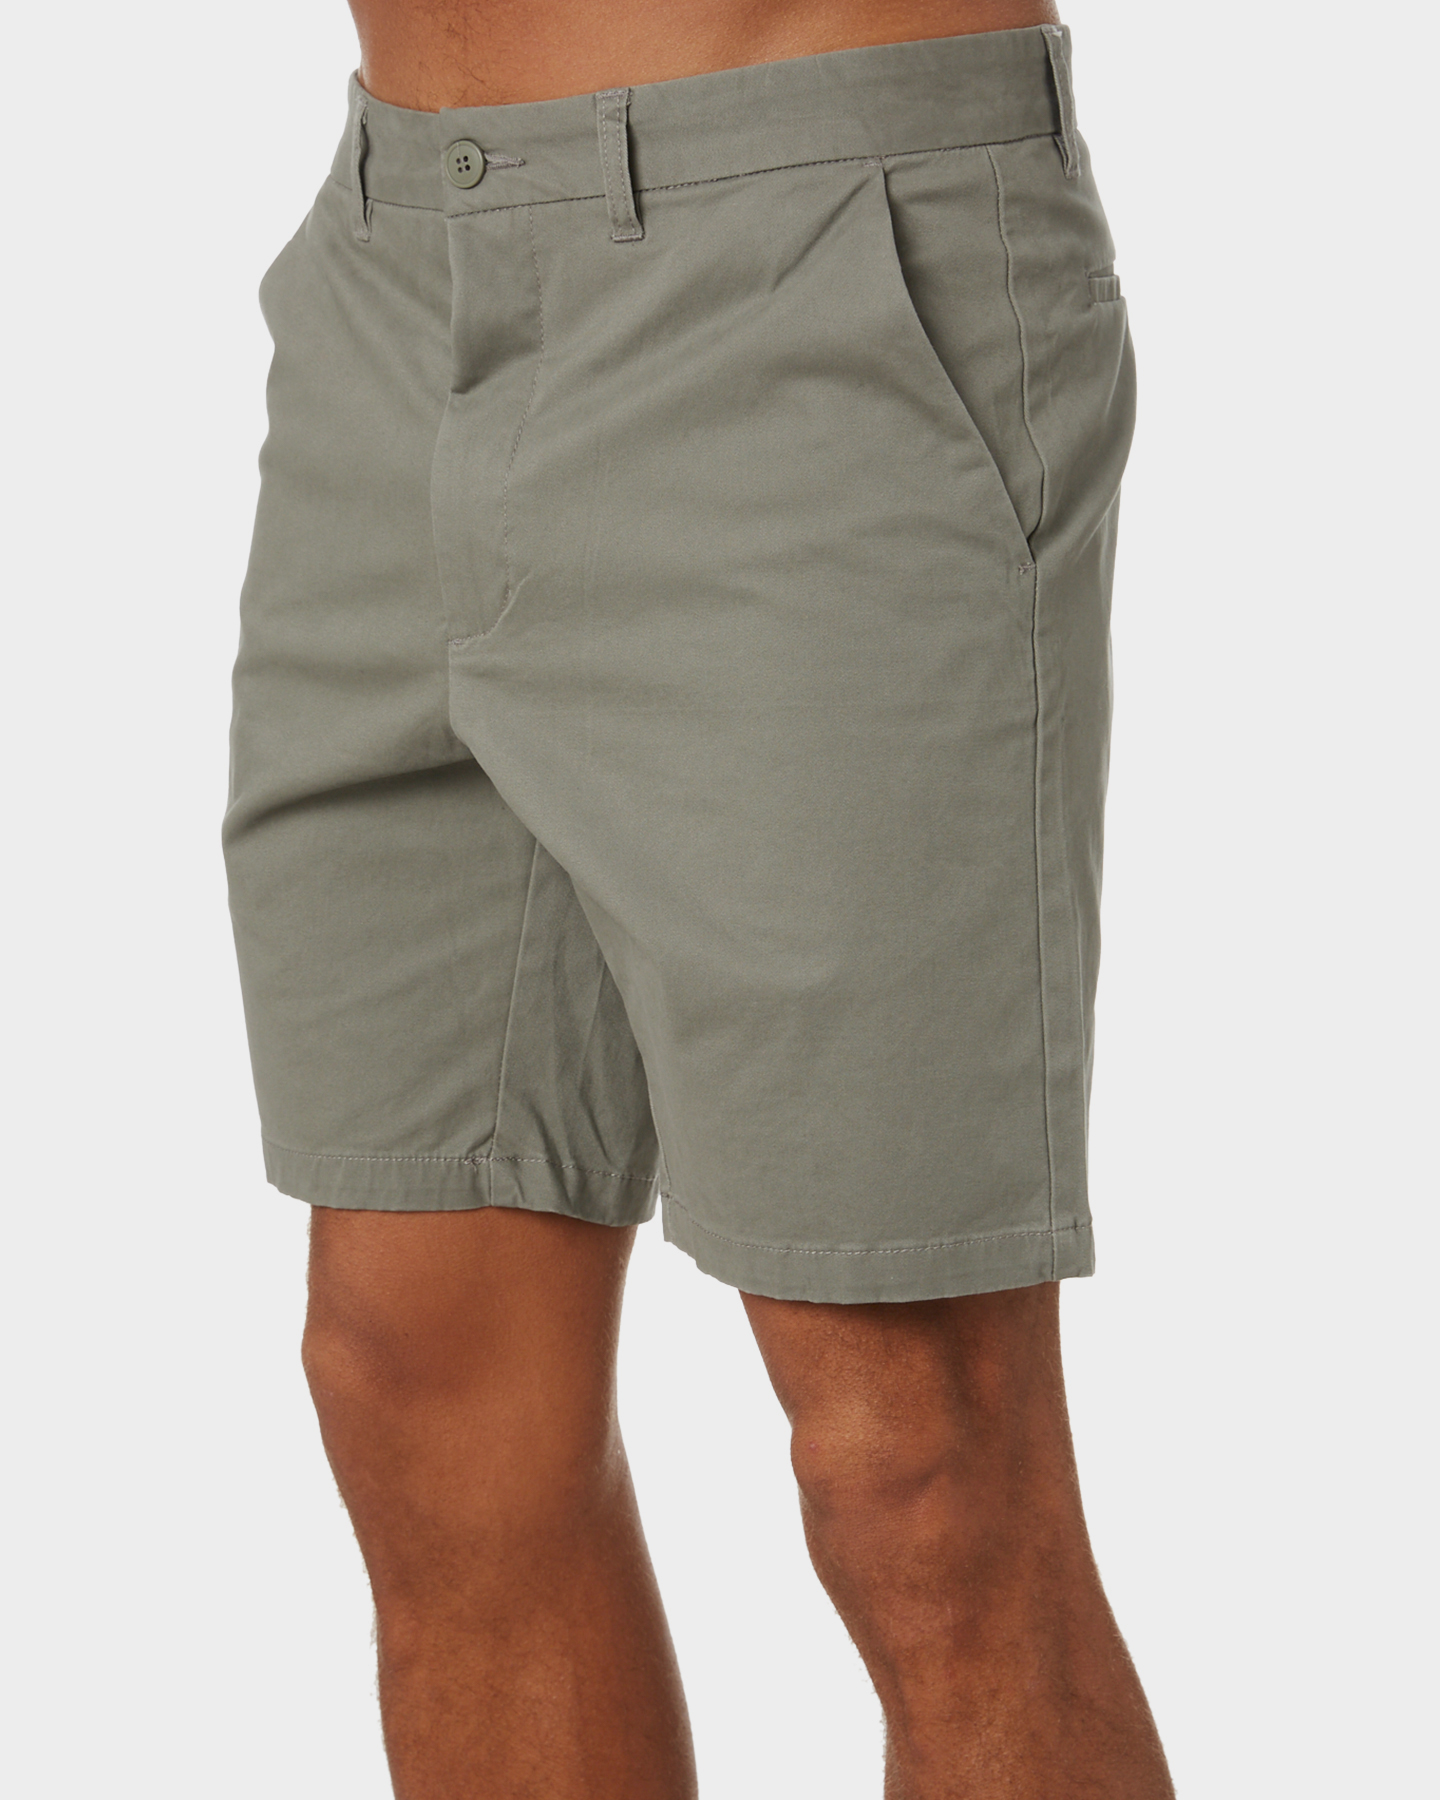 New-Swell-Men-039-s-Dandy-Mens-Chino-Short-Cotton-Fitted-Elastane-Blue thumbnail 17